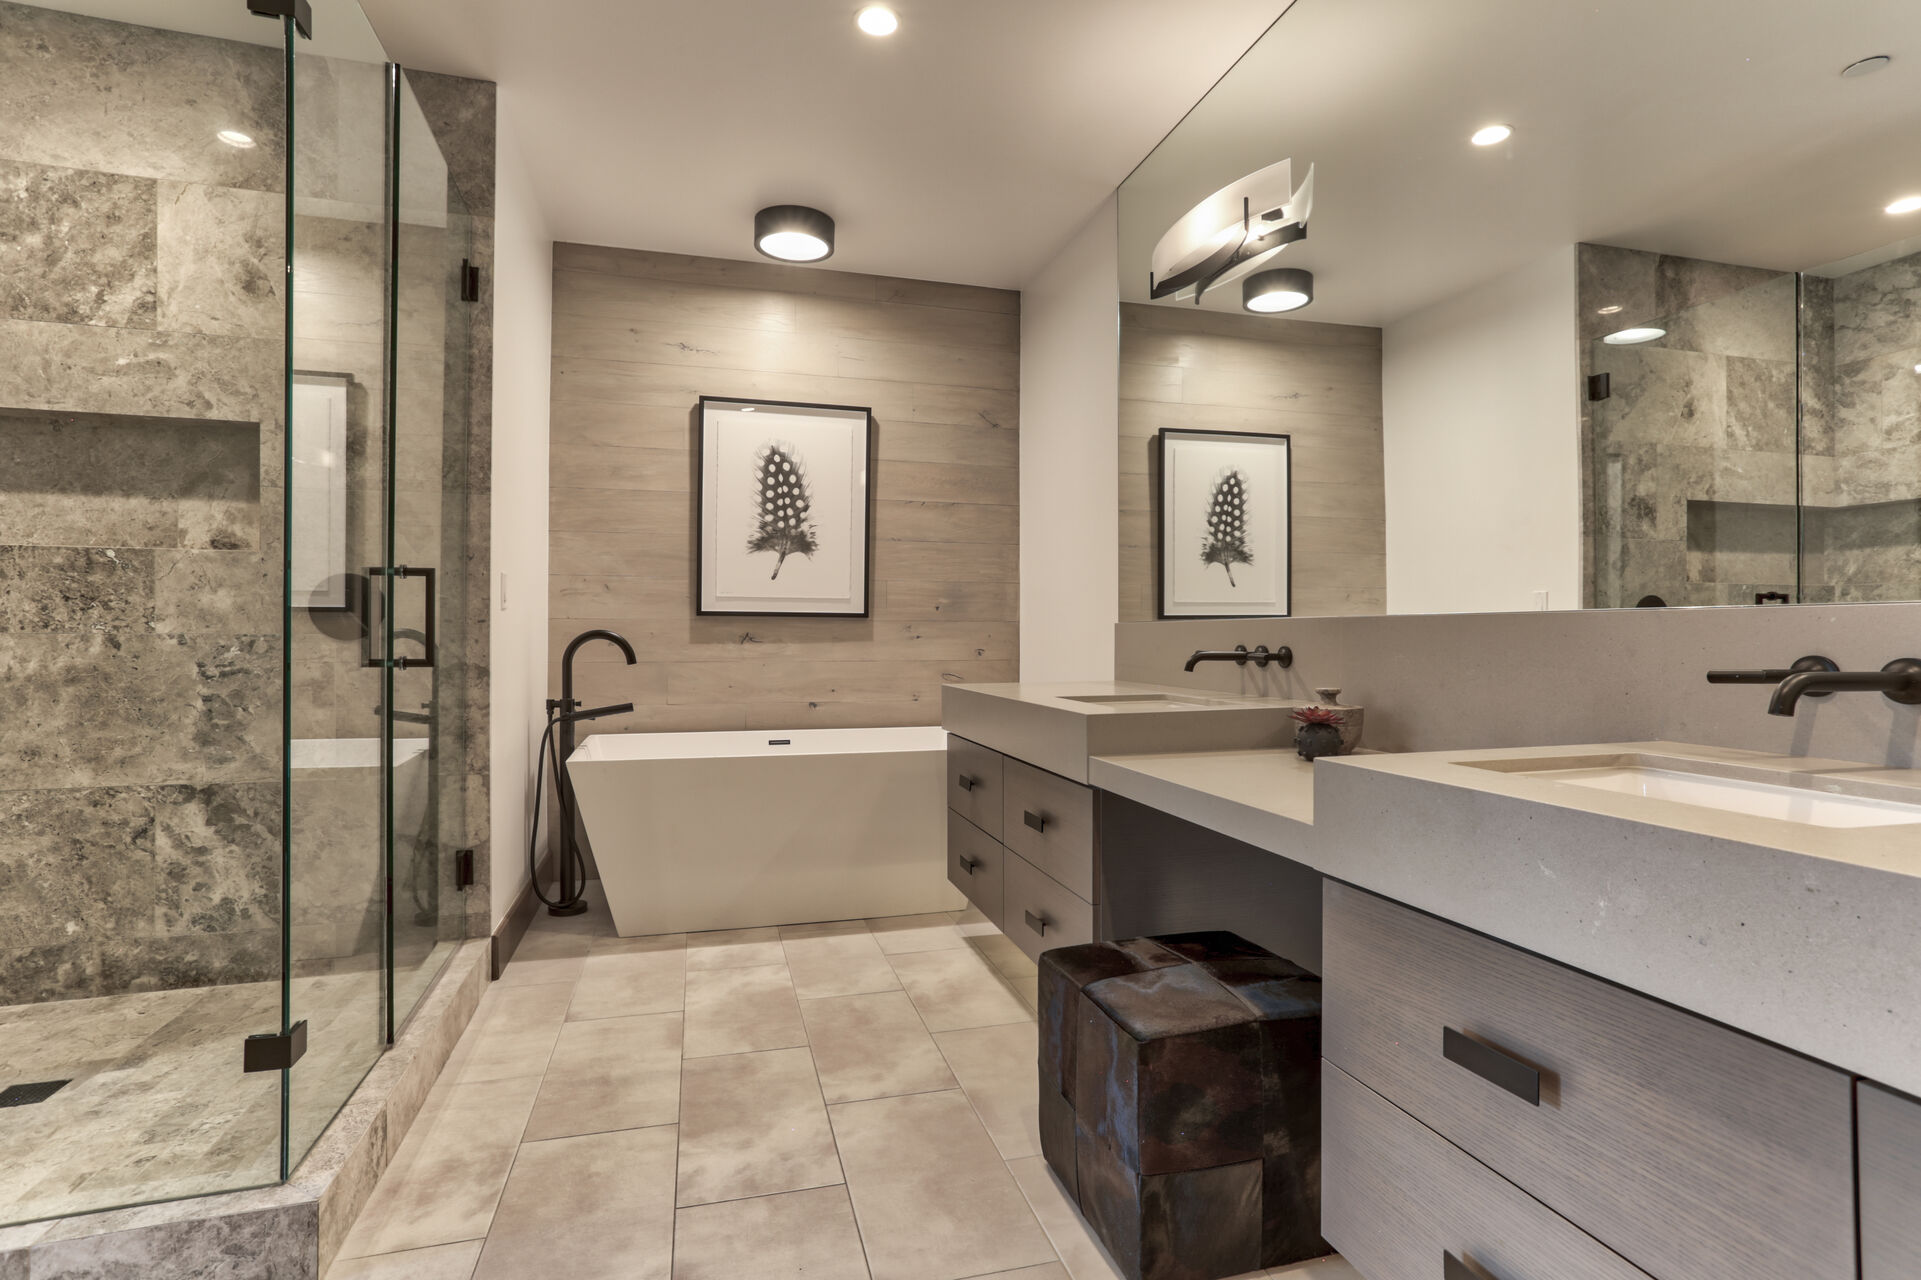 Master Bath with Dual Vanities, a Soaking Tub and Large Tile Shower with Automatic Bathroom Lighting